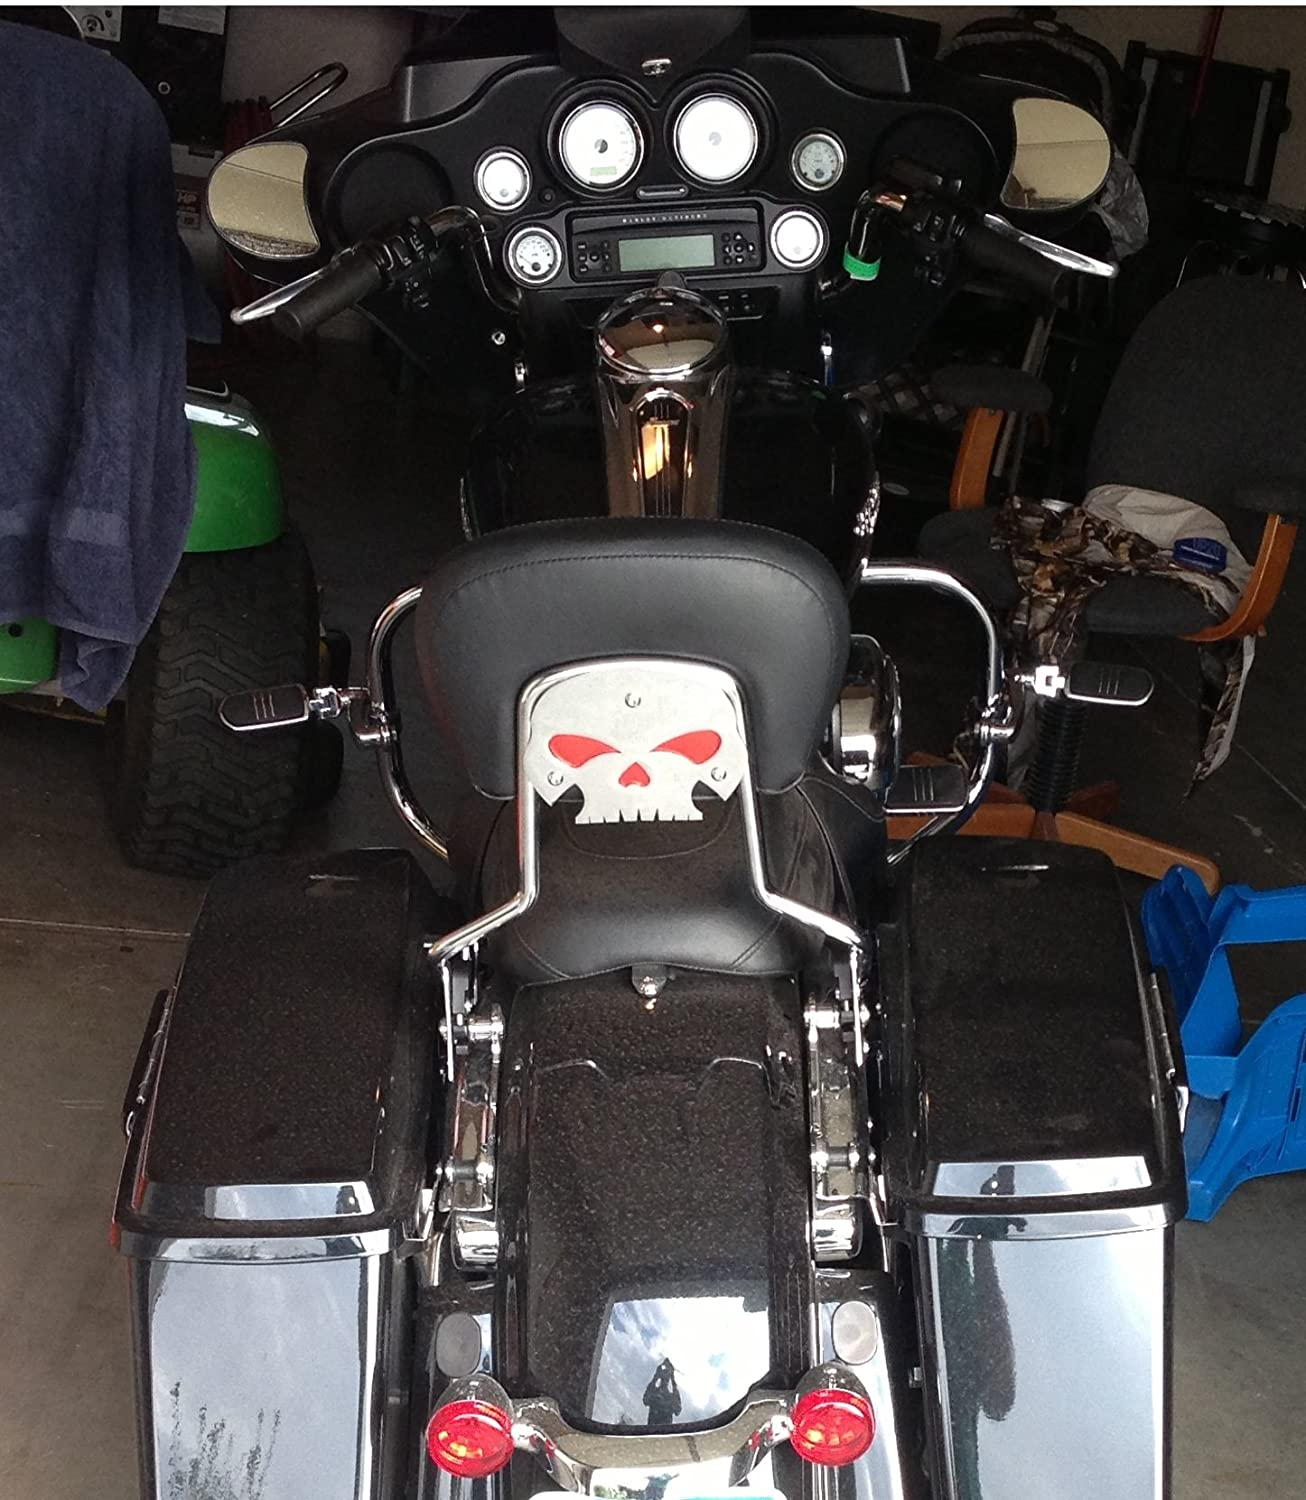 backrest not included Harley Davidson chrome skull backrest mounting plate with red eyes fits touring bikes Road King Street Glide mounting plate only